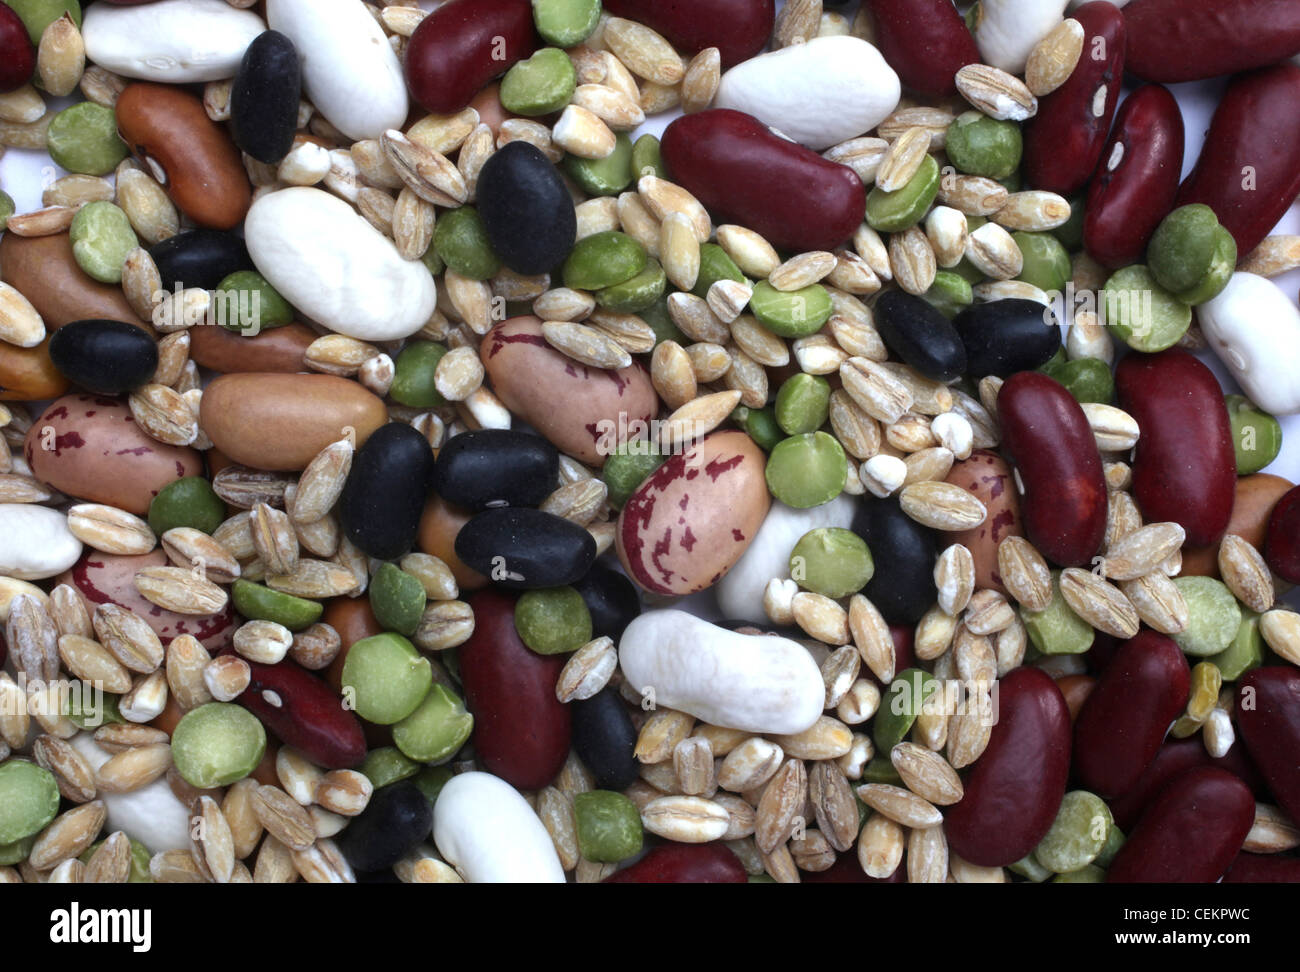 Mix of black and red string bean, lentil, green and yellow peas - Stock Image